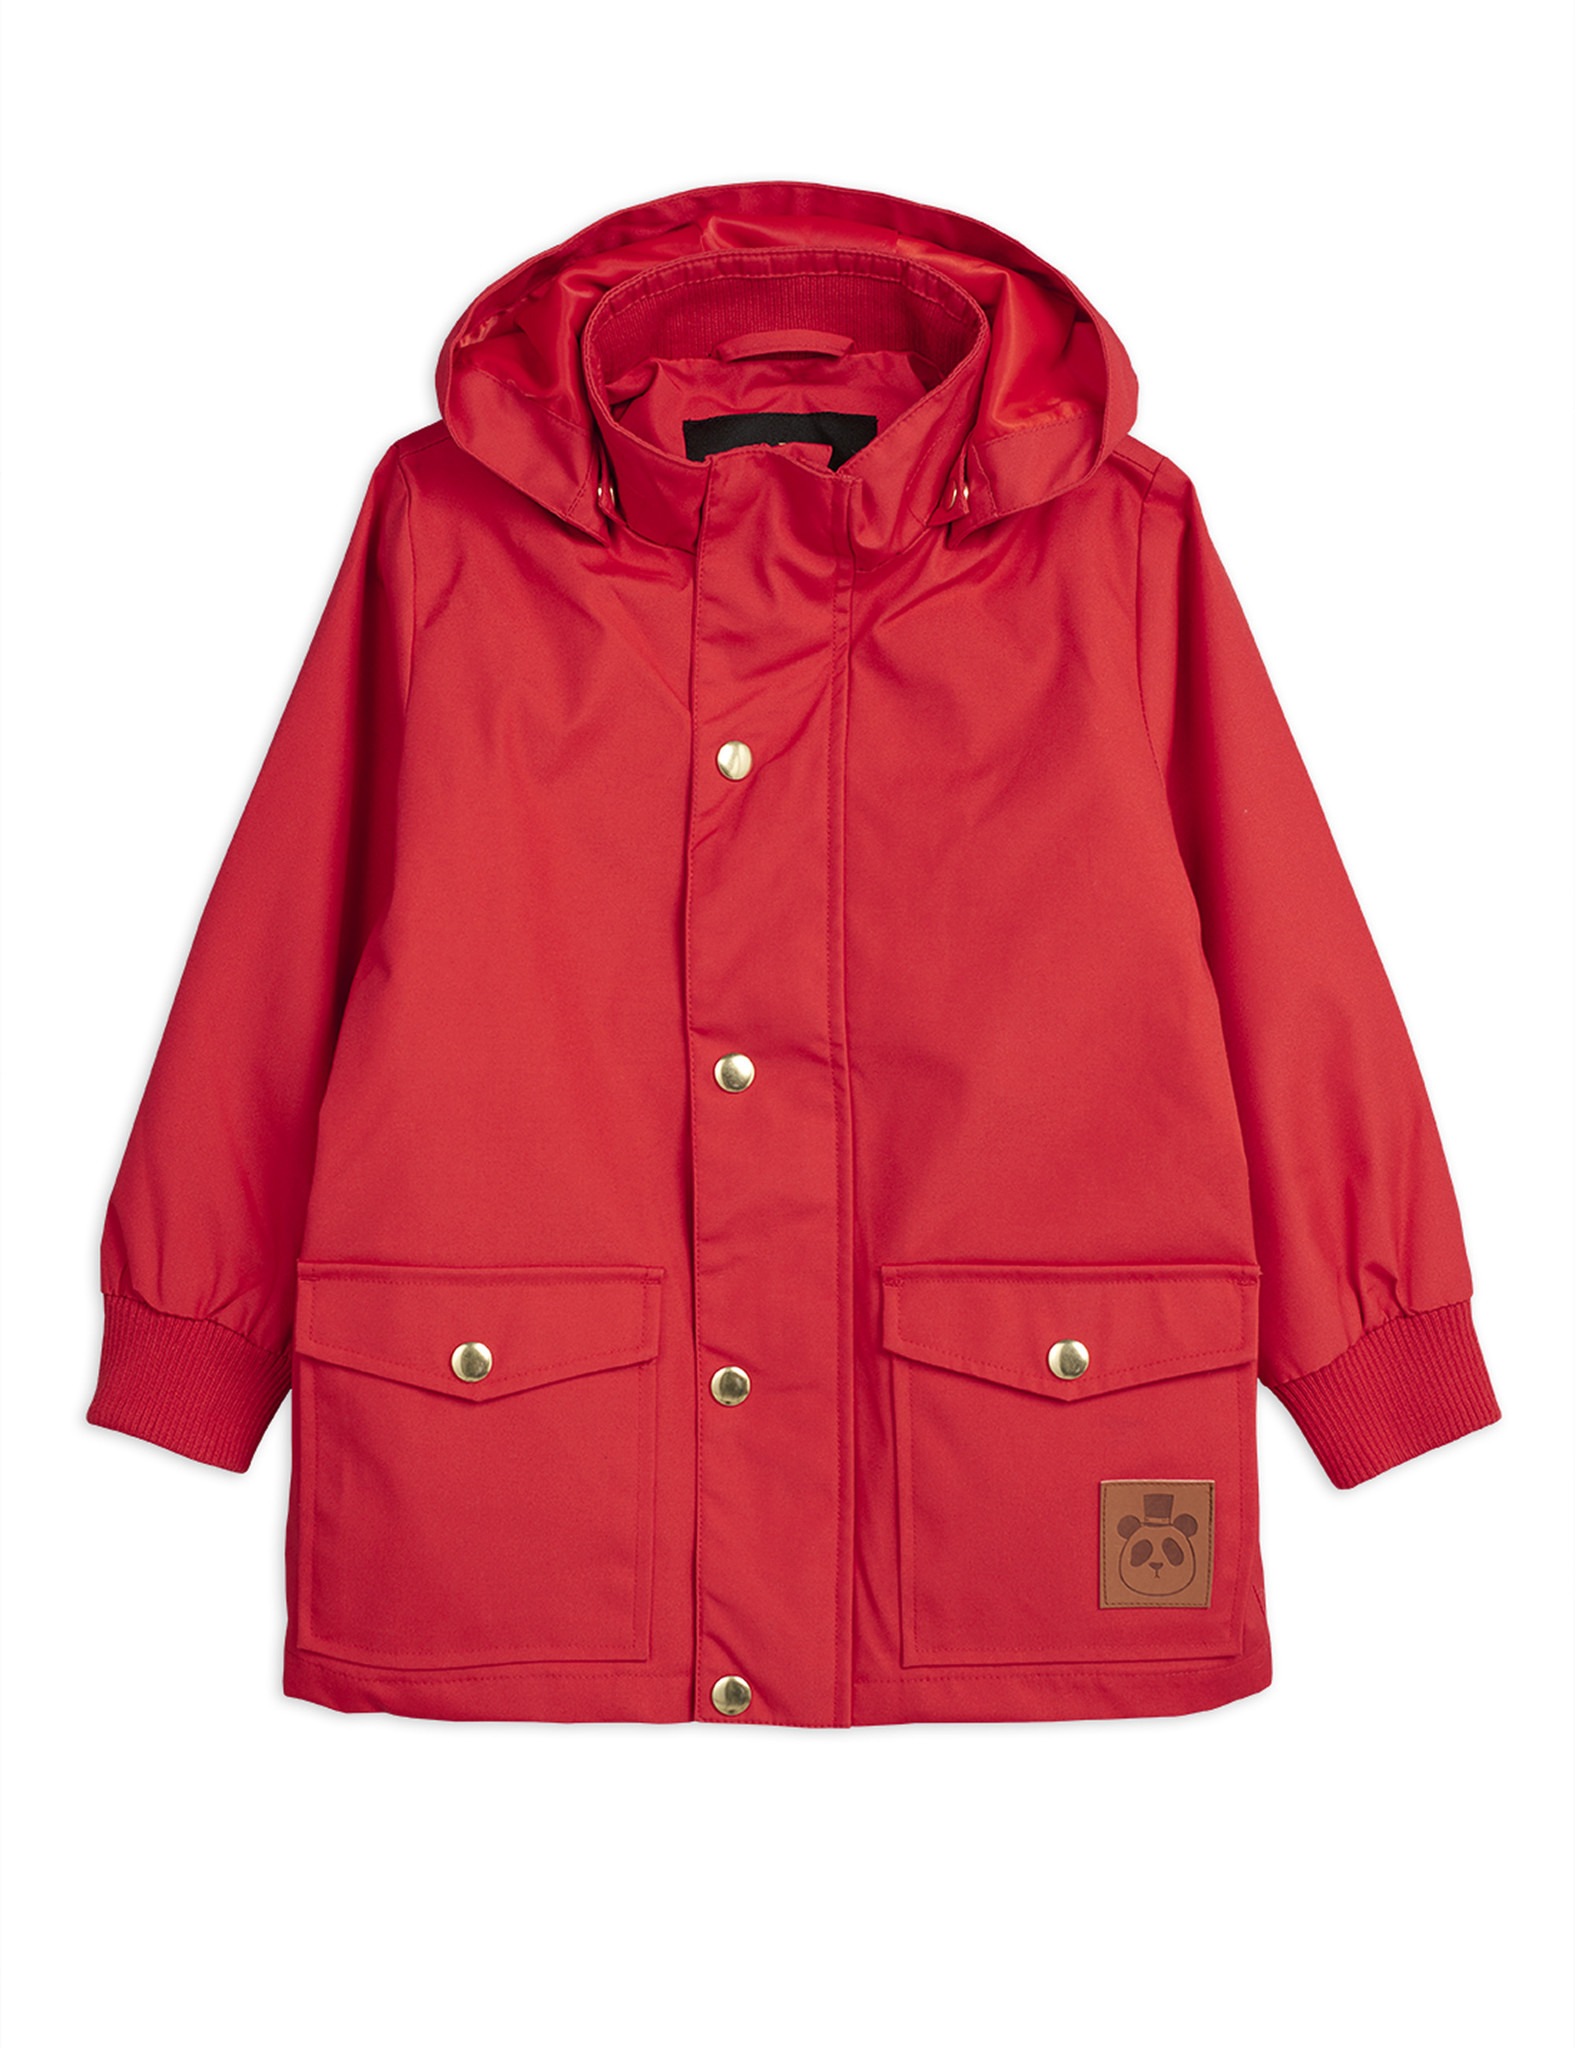 Pico jacket - Red-1